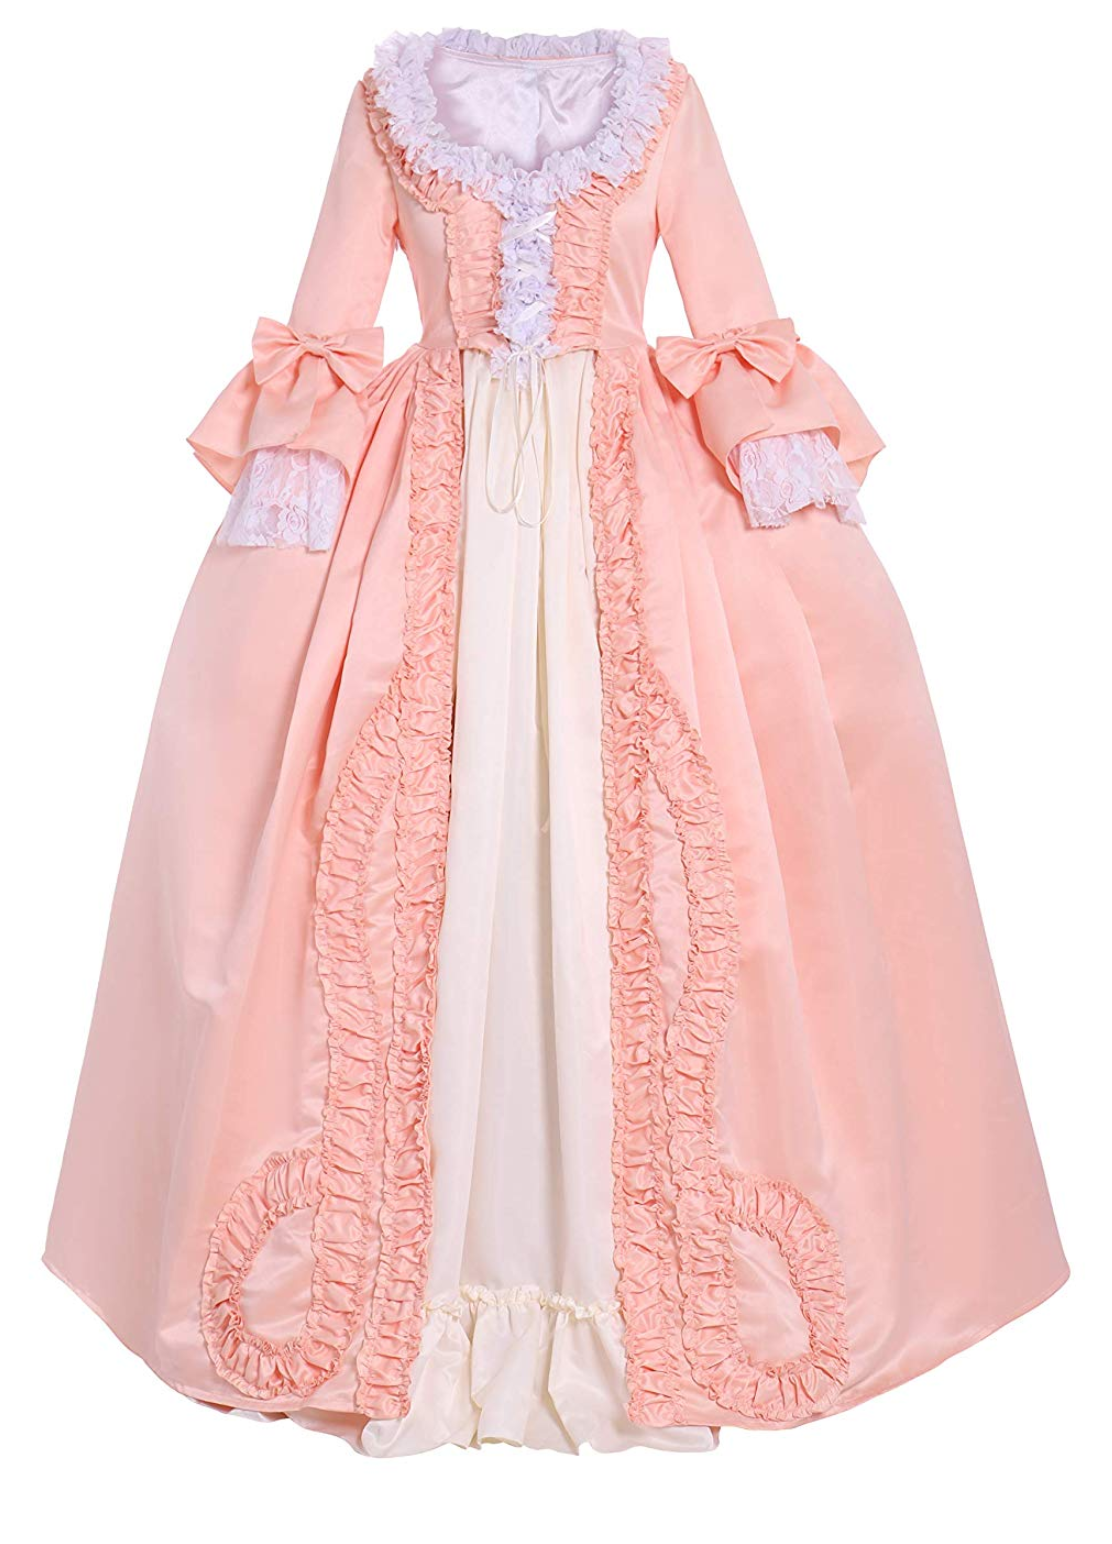 Pink And Cream White 18th Century Gown Dress Gothic Victorian Dresses Rococo Dress Victorian Dress Costume [ 1544 x 1112 Pixel ]